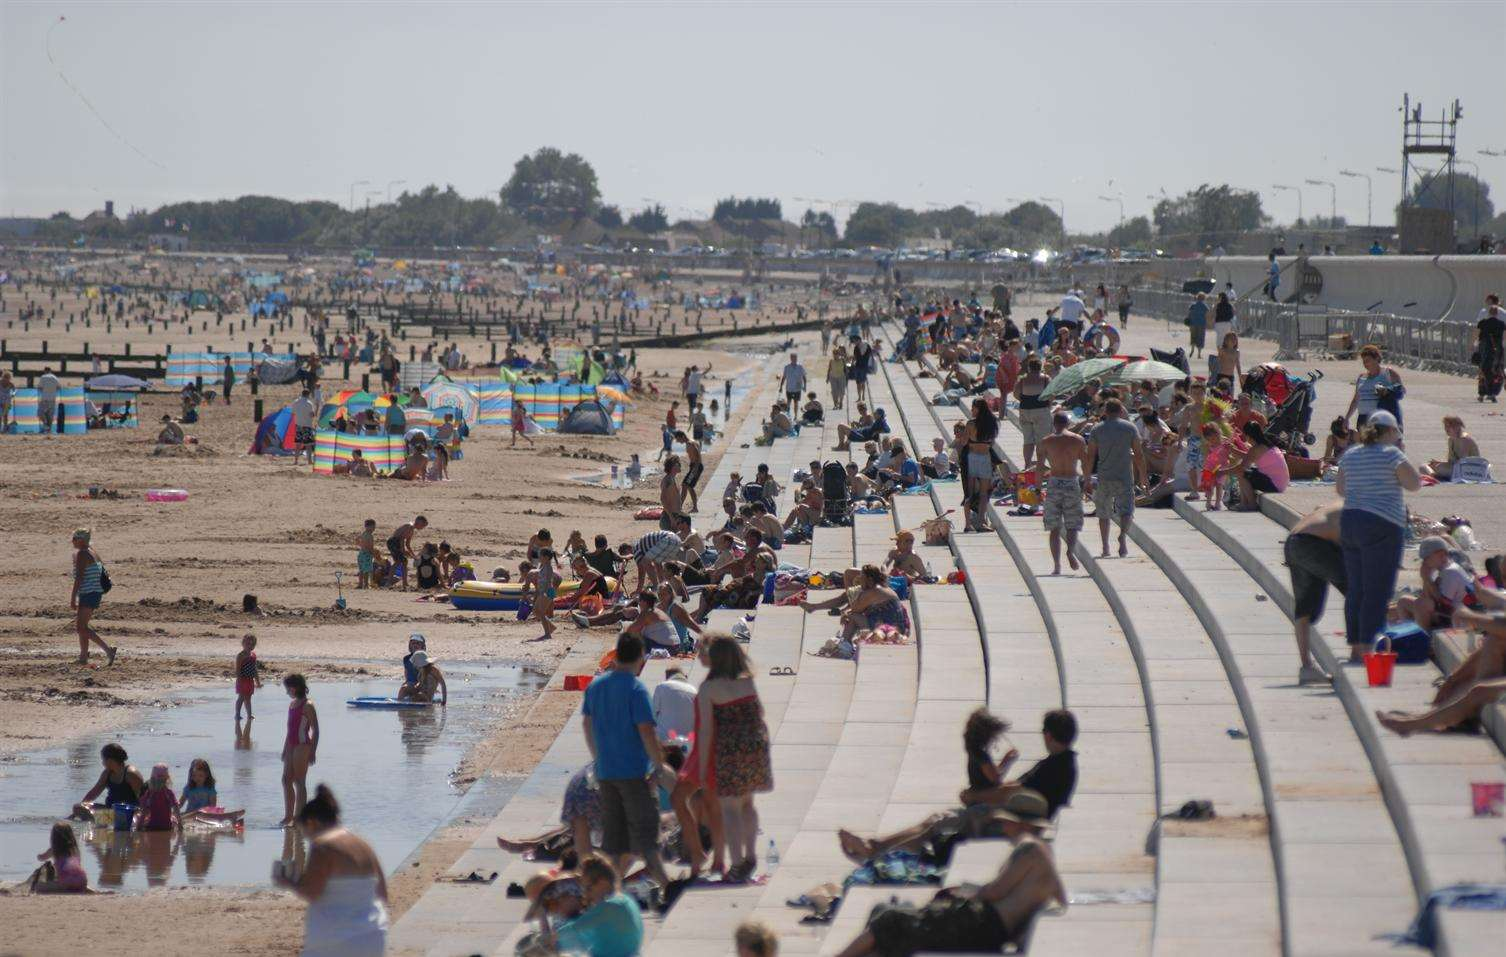 Medical experts have warned people to stay hydrated on the beach in Kent, such as at Dymchurch